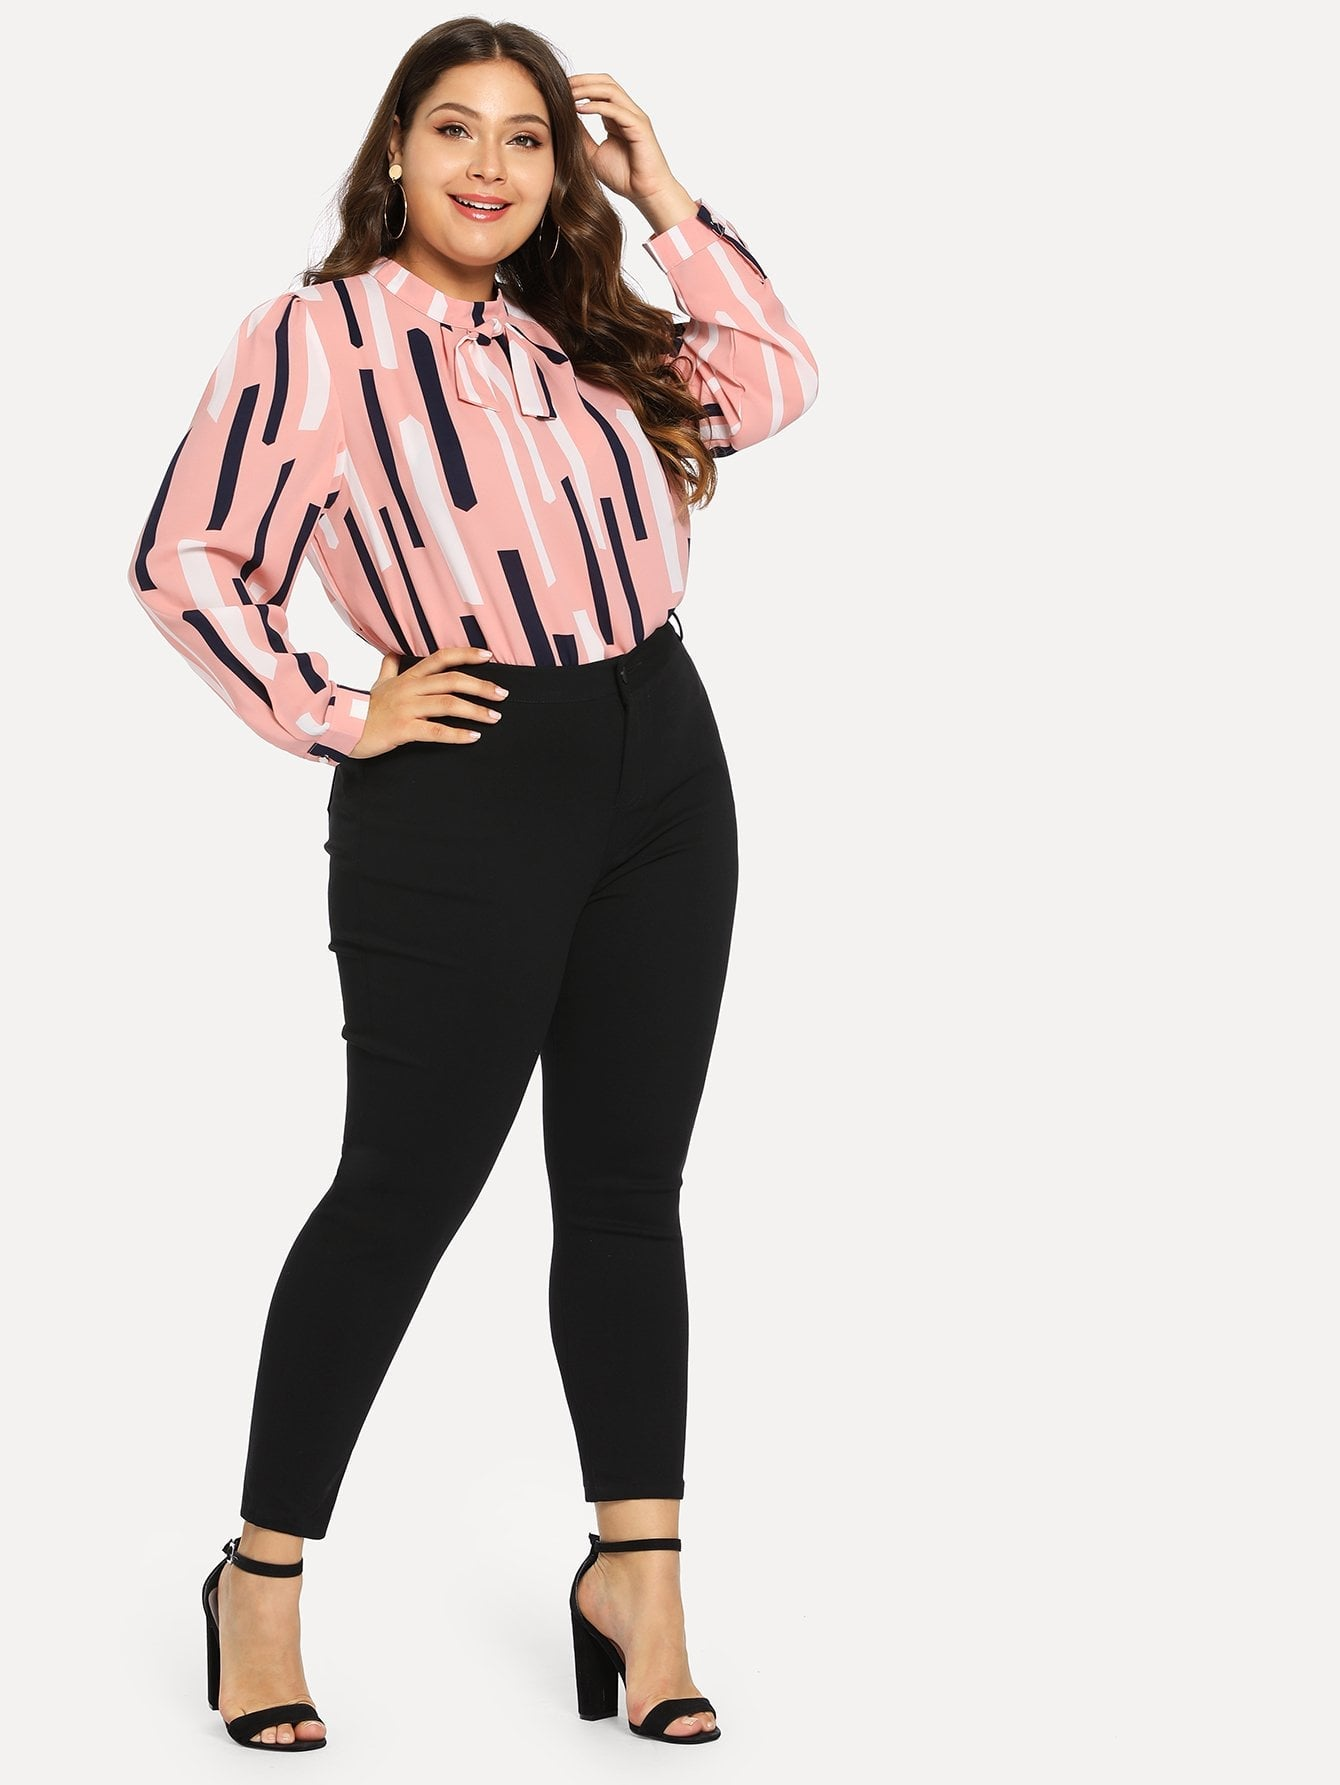 Plus Size Black Stretch Skinny Jeans